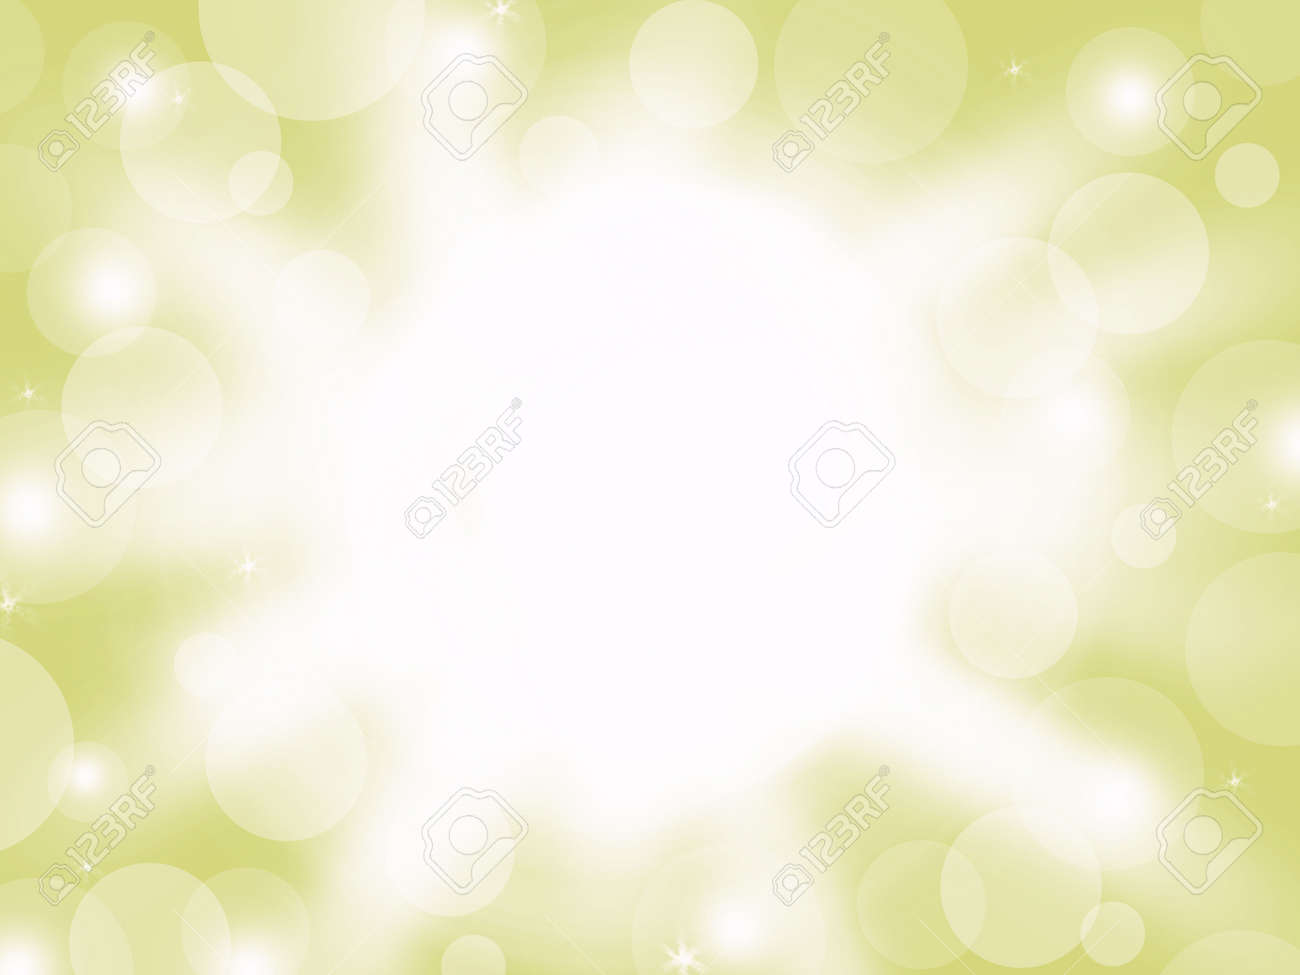 Abstract Lighting And Bokeh White Color On Yellow Pastel Color Stock Photo Picture And Royalty Free Image Image 88558505